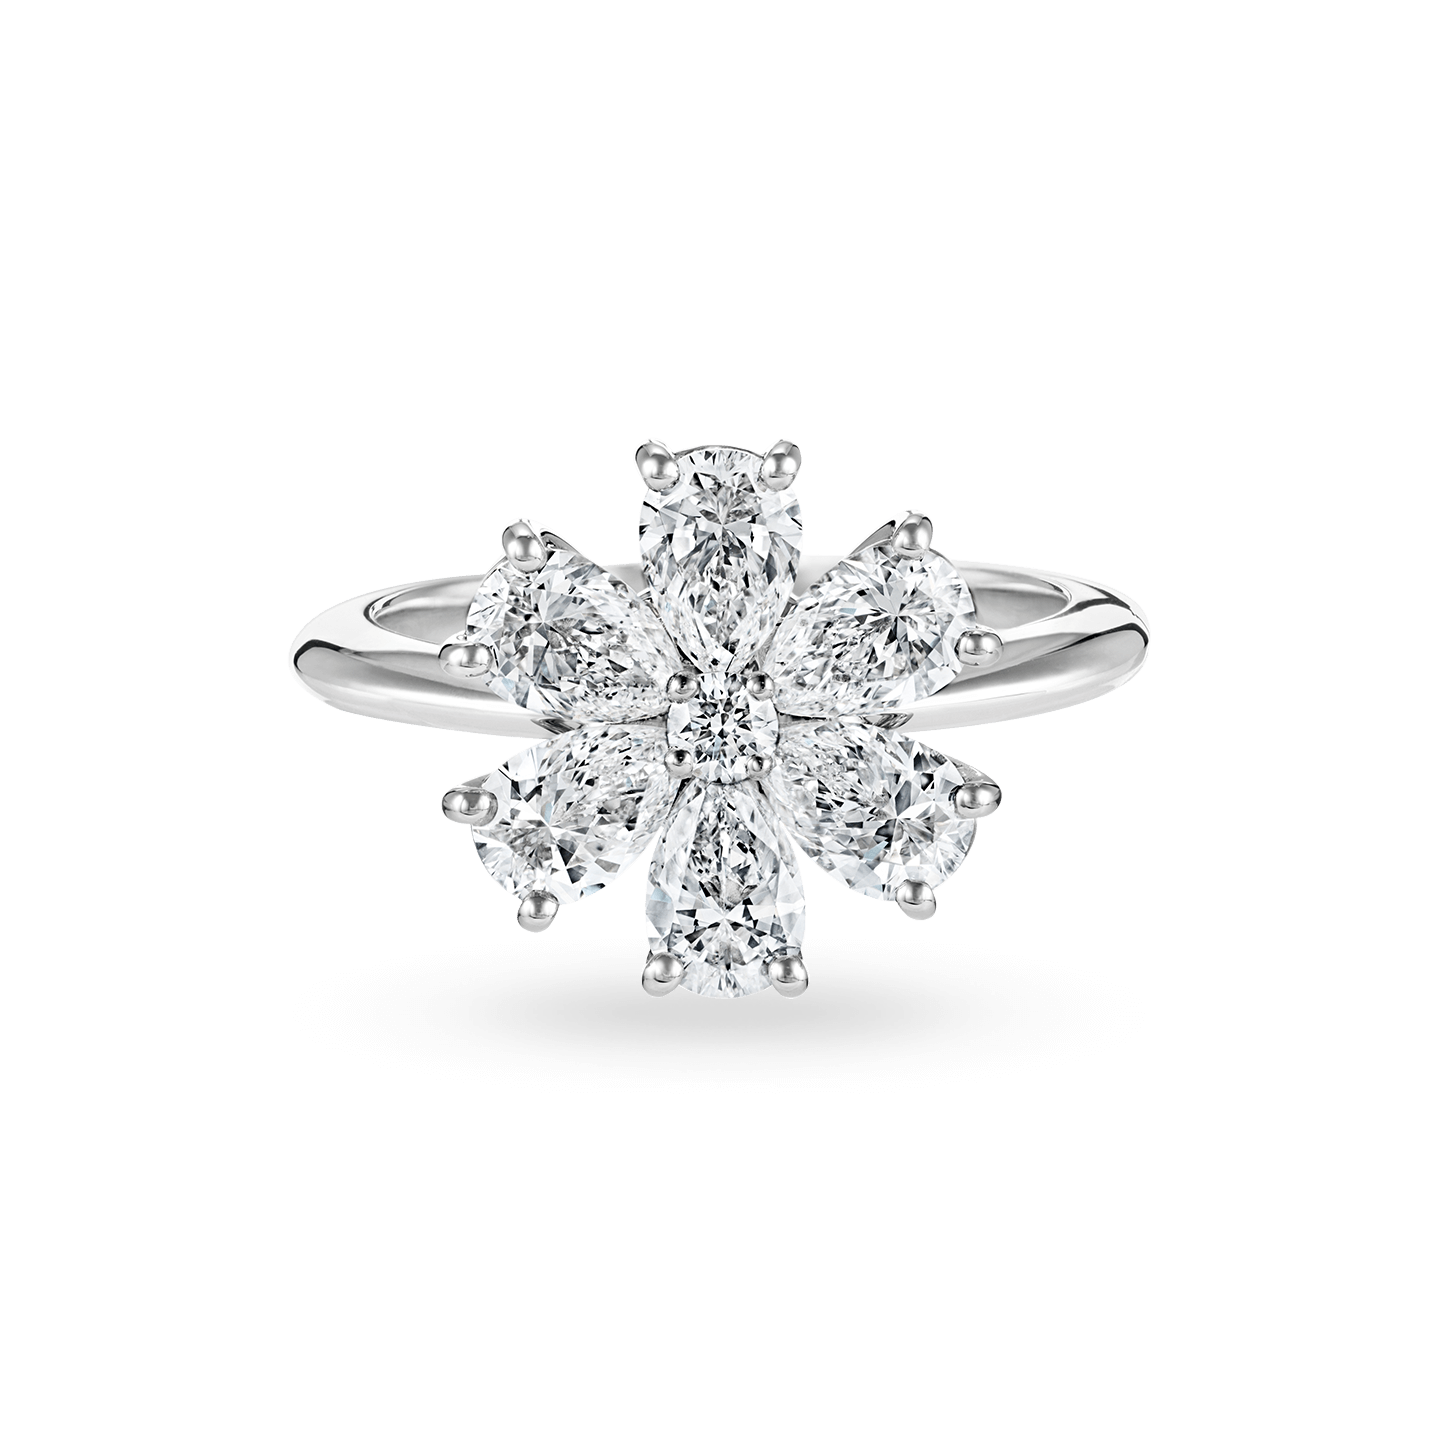 Forget-Me-Not Diamond Ring, Product Image 1